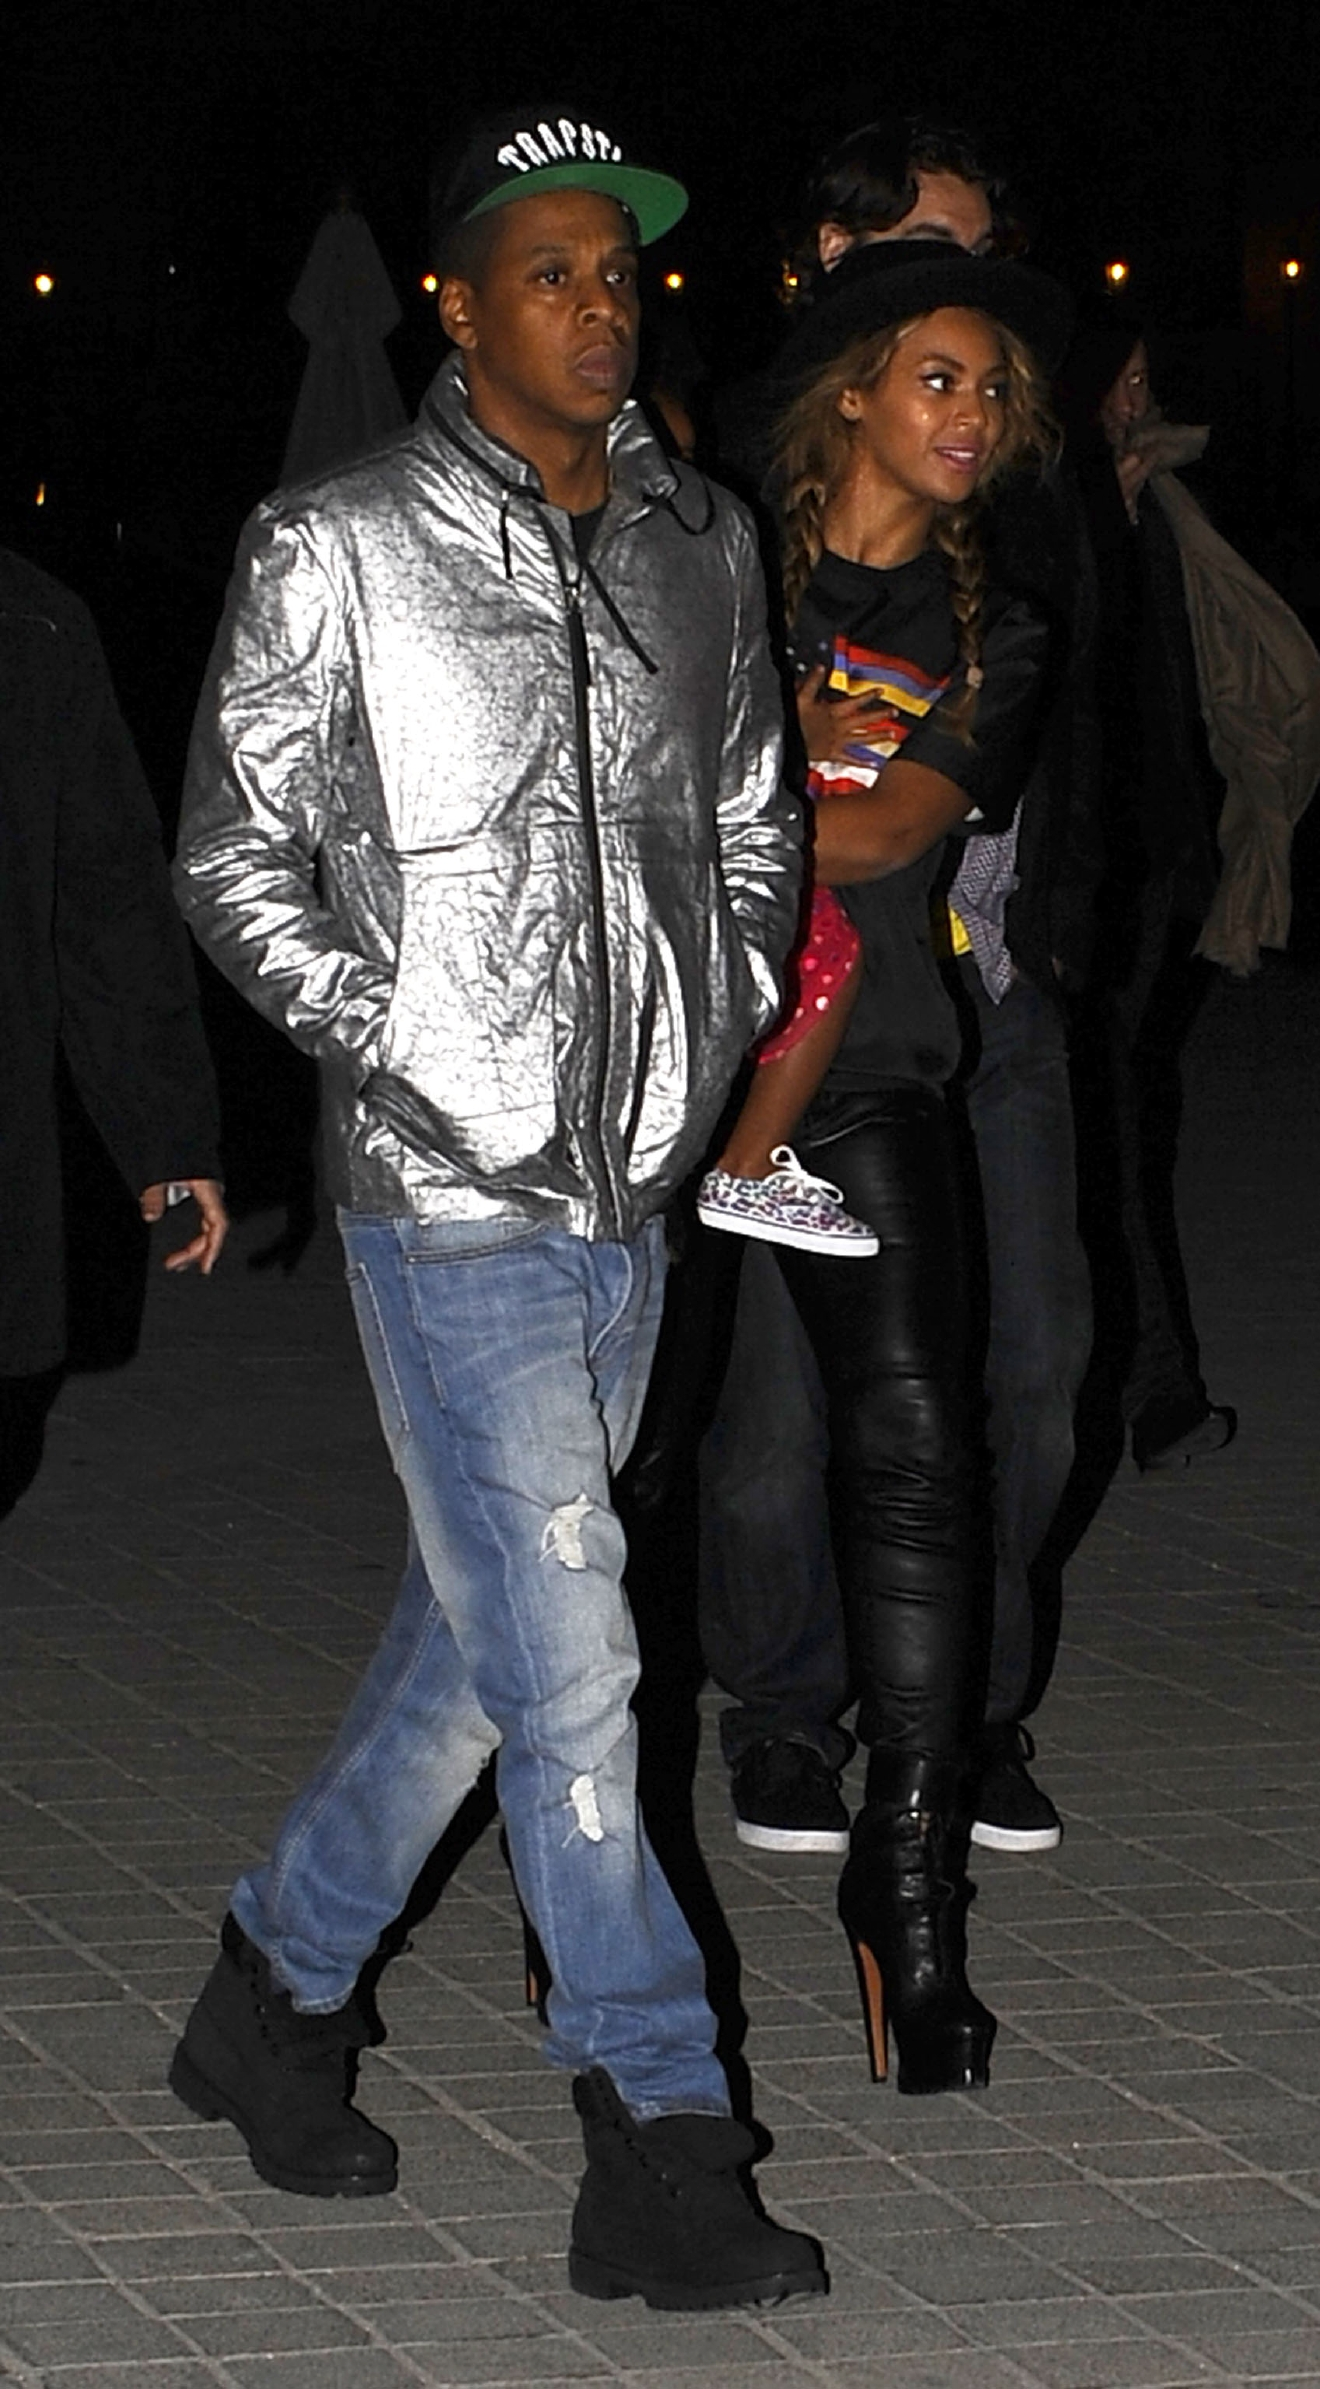 Jay Z and Beyonce with Blue leave the Louvre Museum in Paris on Oct. 7, 2014. (WENN.com)